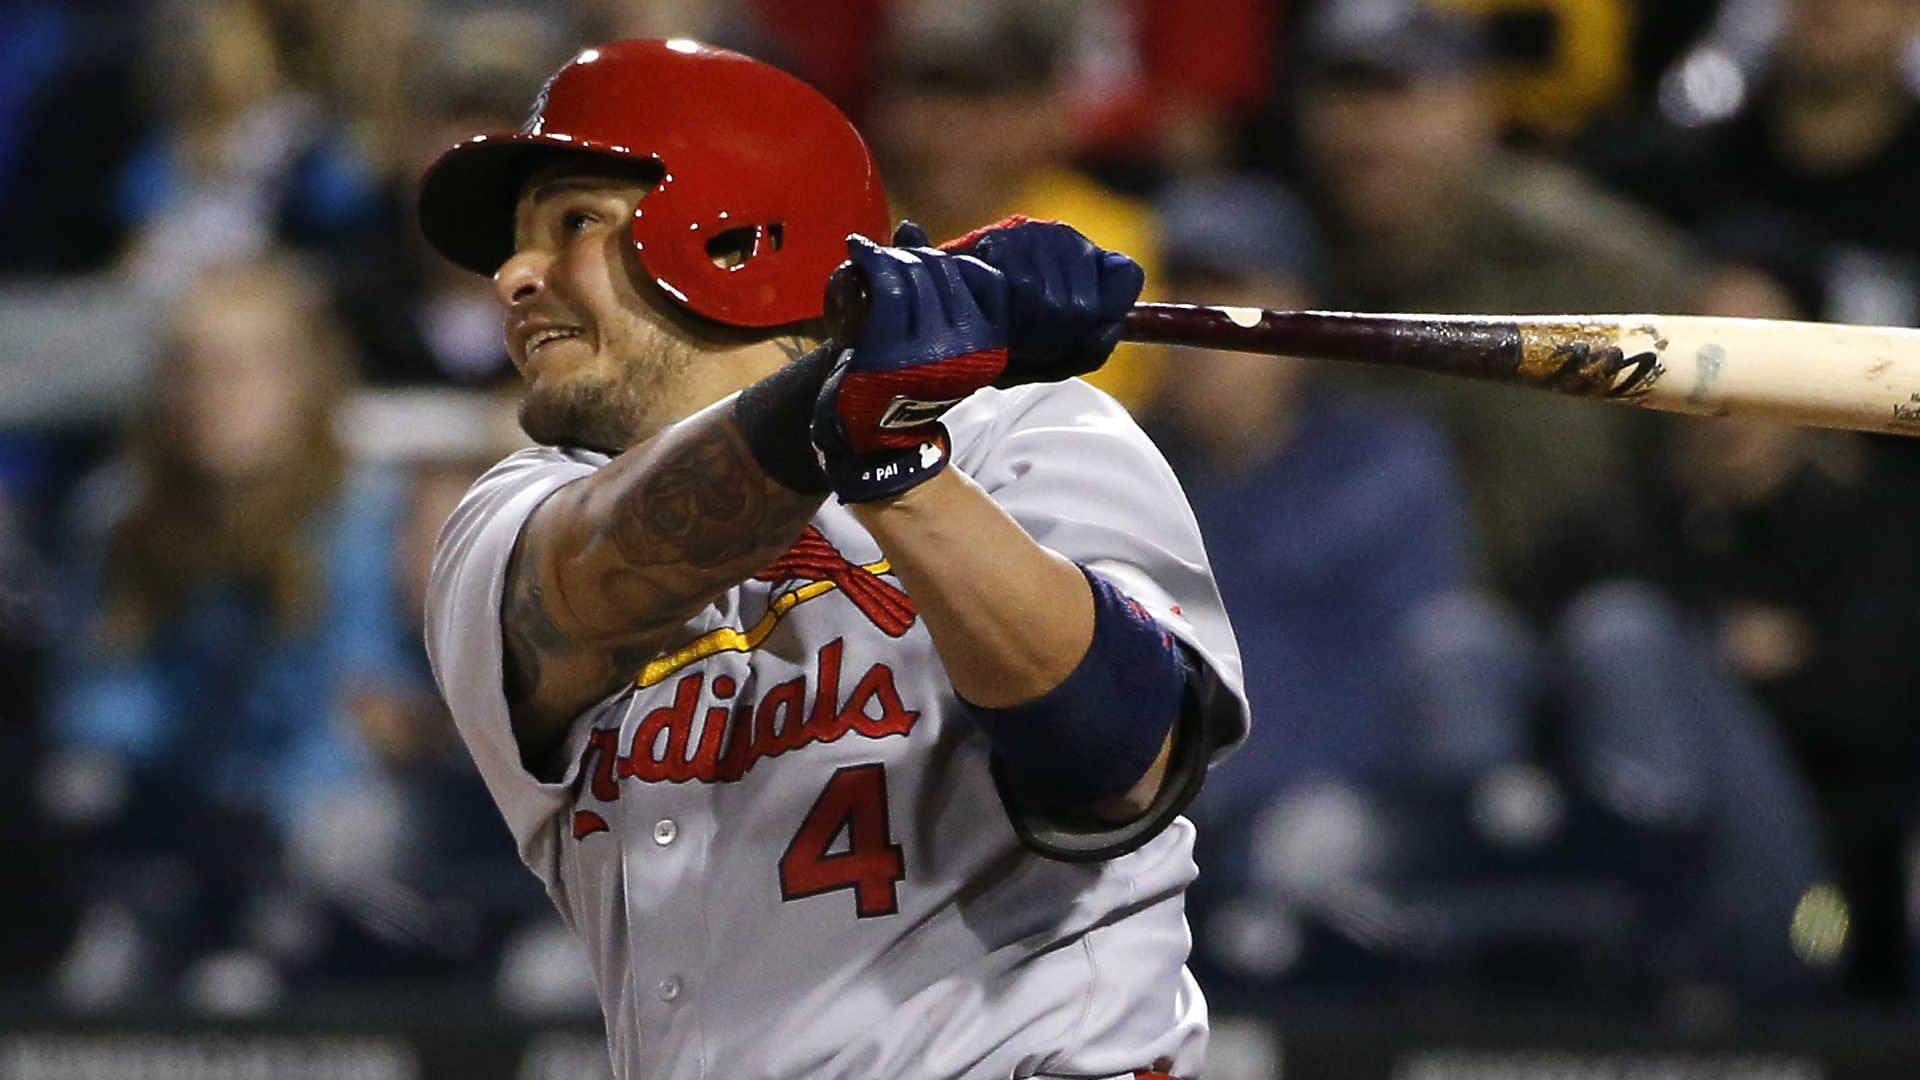 Yadier Molina injury update: Cardinals C out 8